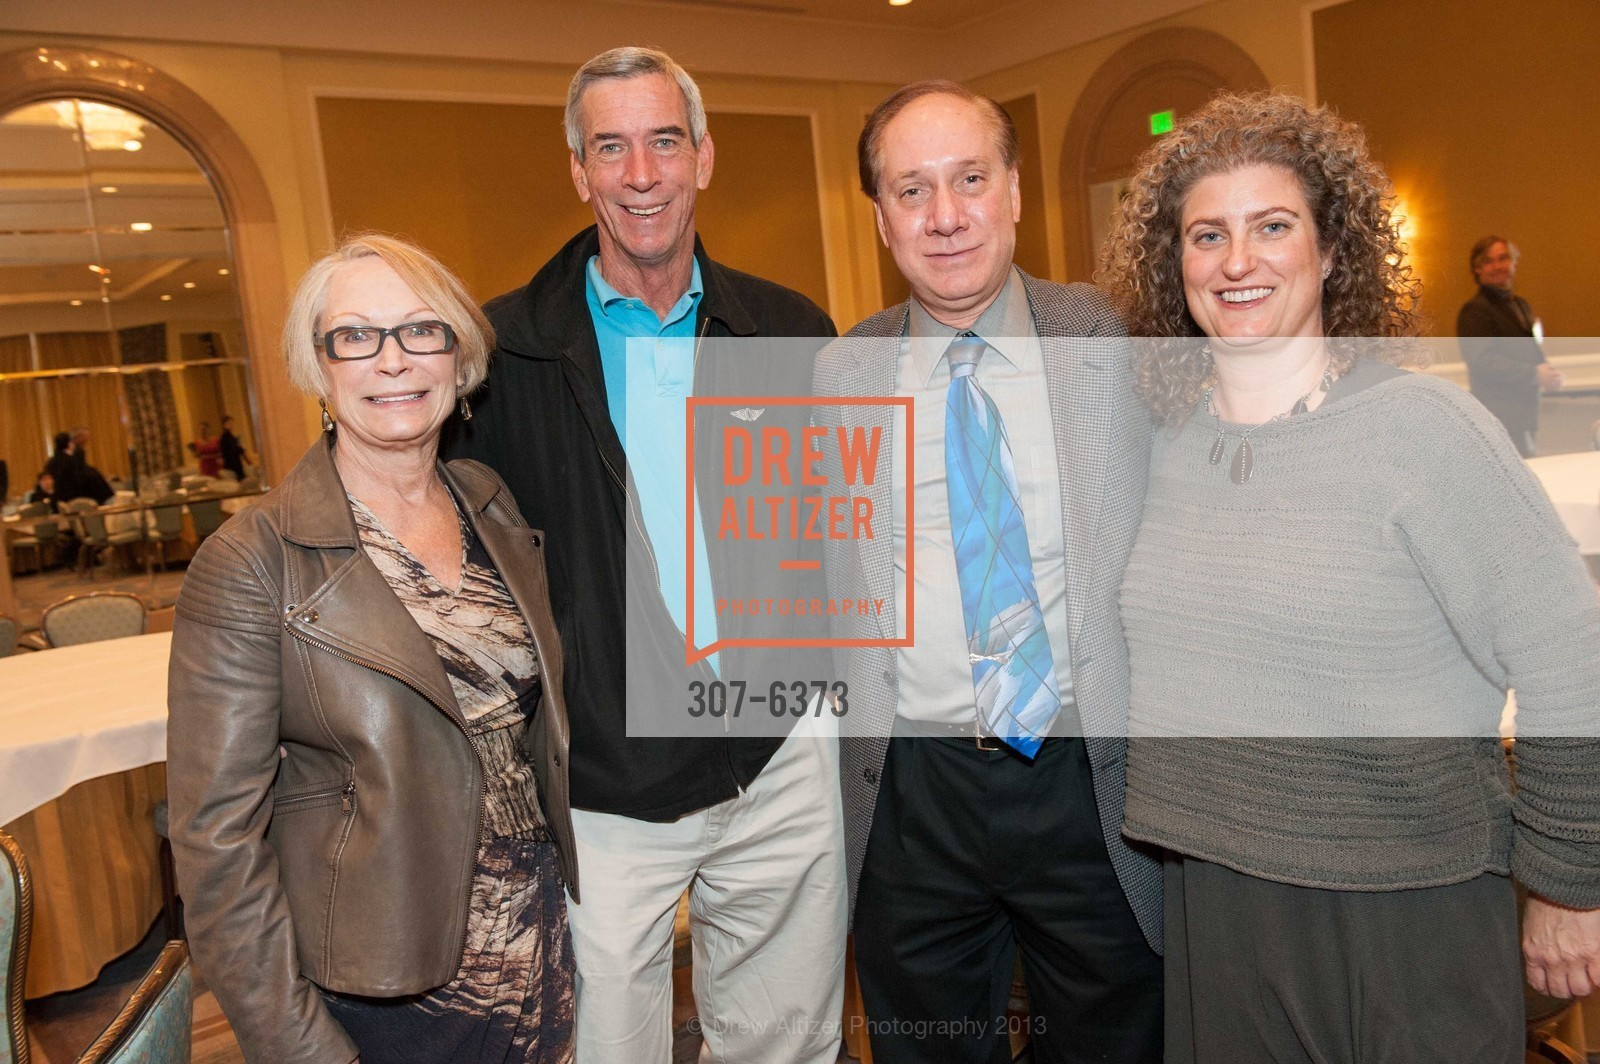 Millicent Buxton Smith, Dan McCurthy, Paul Christopher, Madeleine Lanske, HEALTH RIGHT 360:  Be the Change 2013, US, November 8th, 2013